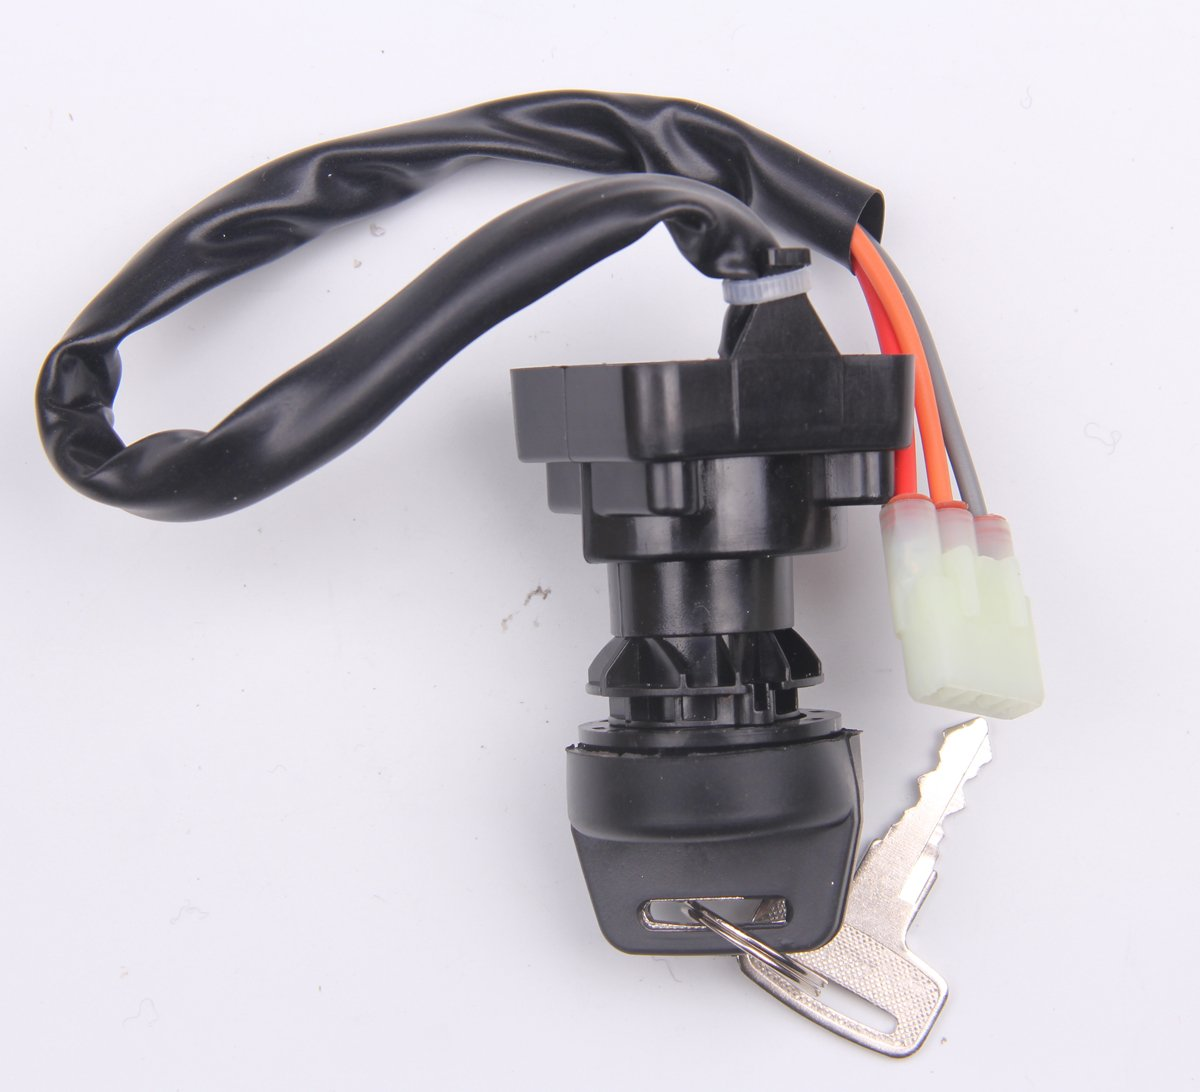 NEW Ignition Key Switch for Arctic Cat 08-11 366 11-12 425 350 13-15 400 450 3313-439